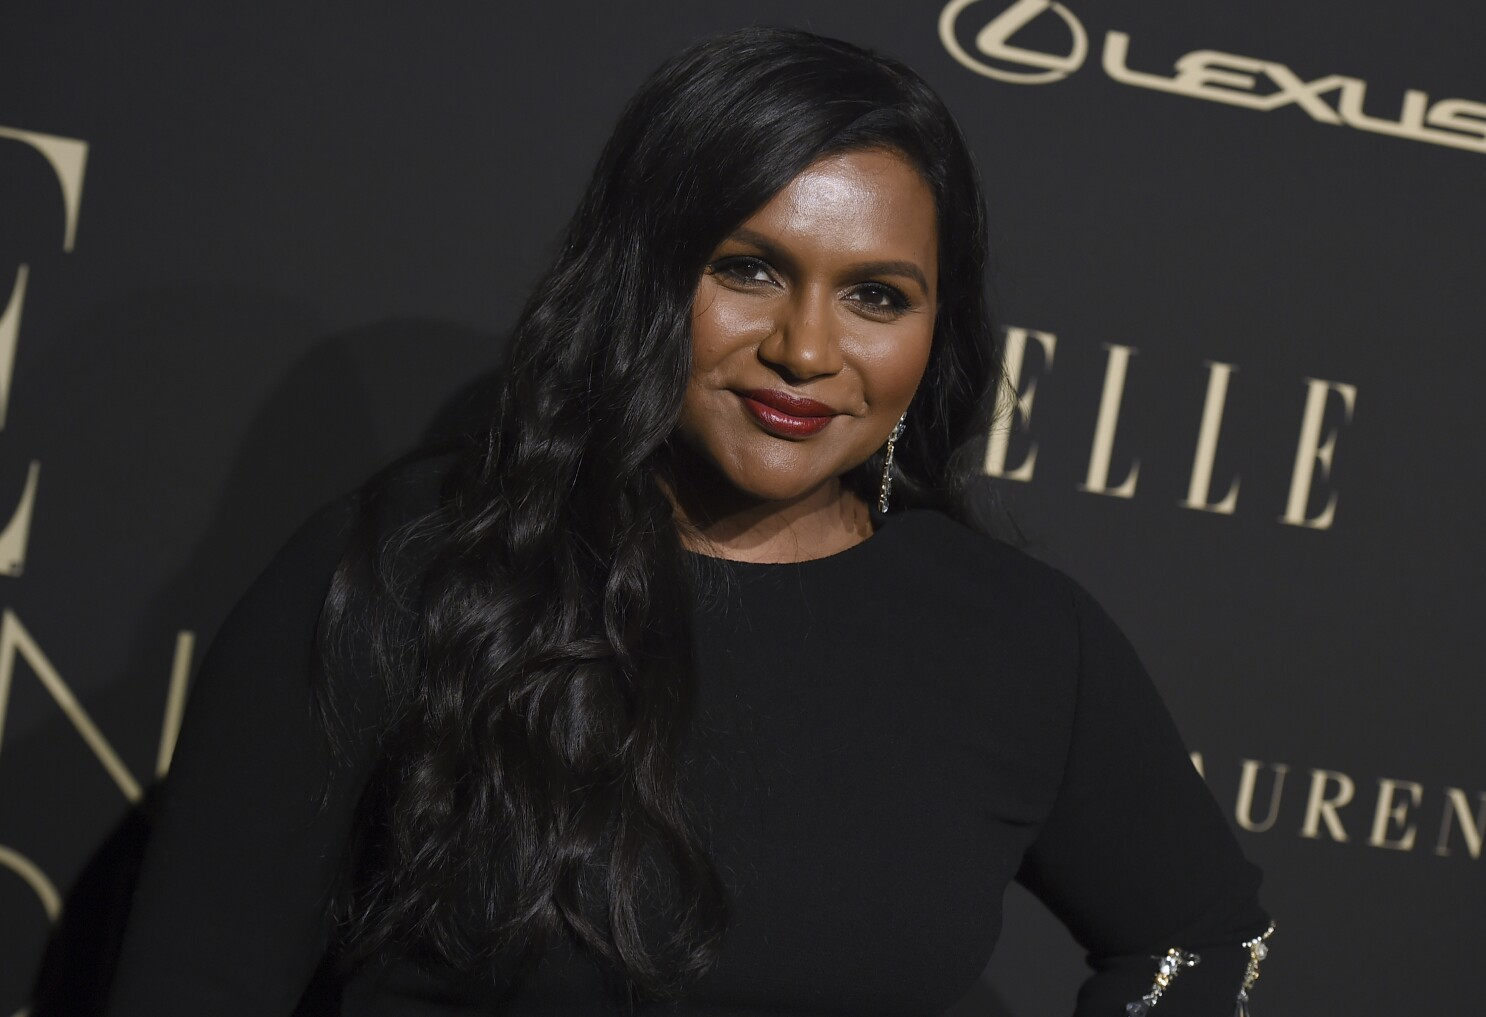 Mindy Kaling Sees Hope And Progress After Taking On The Tv Academy Los Angeles Times